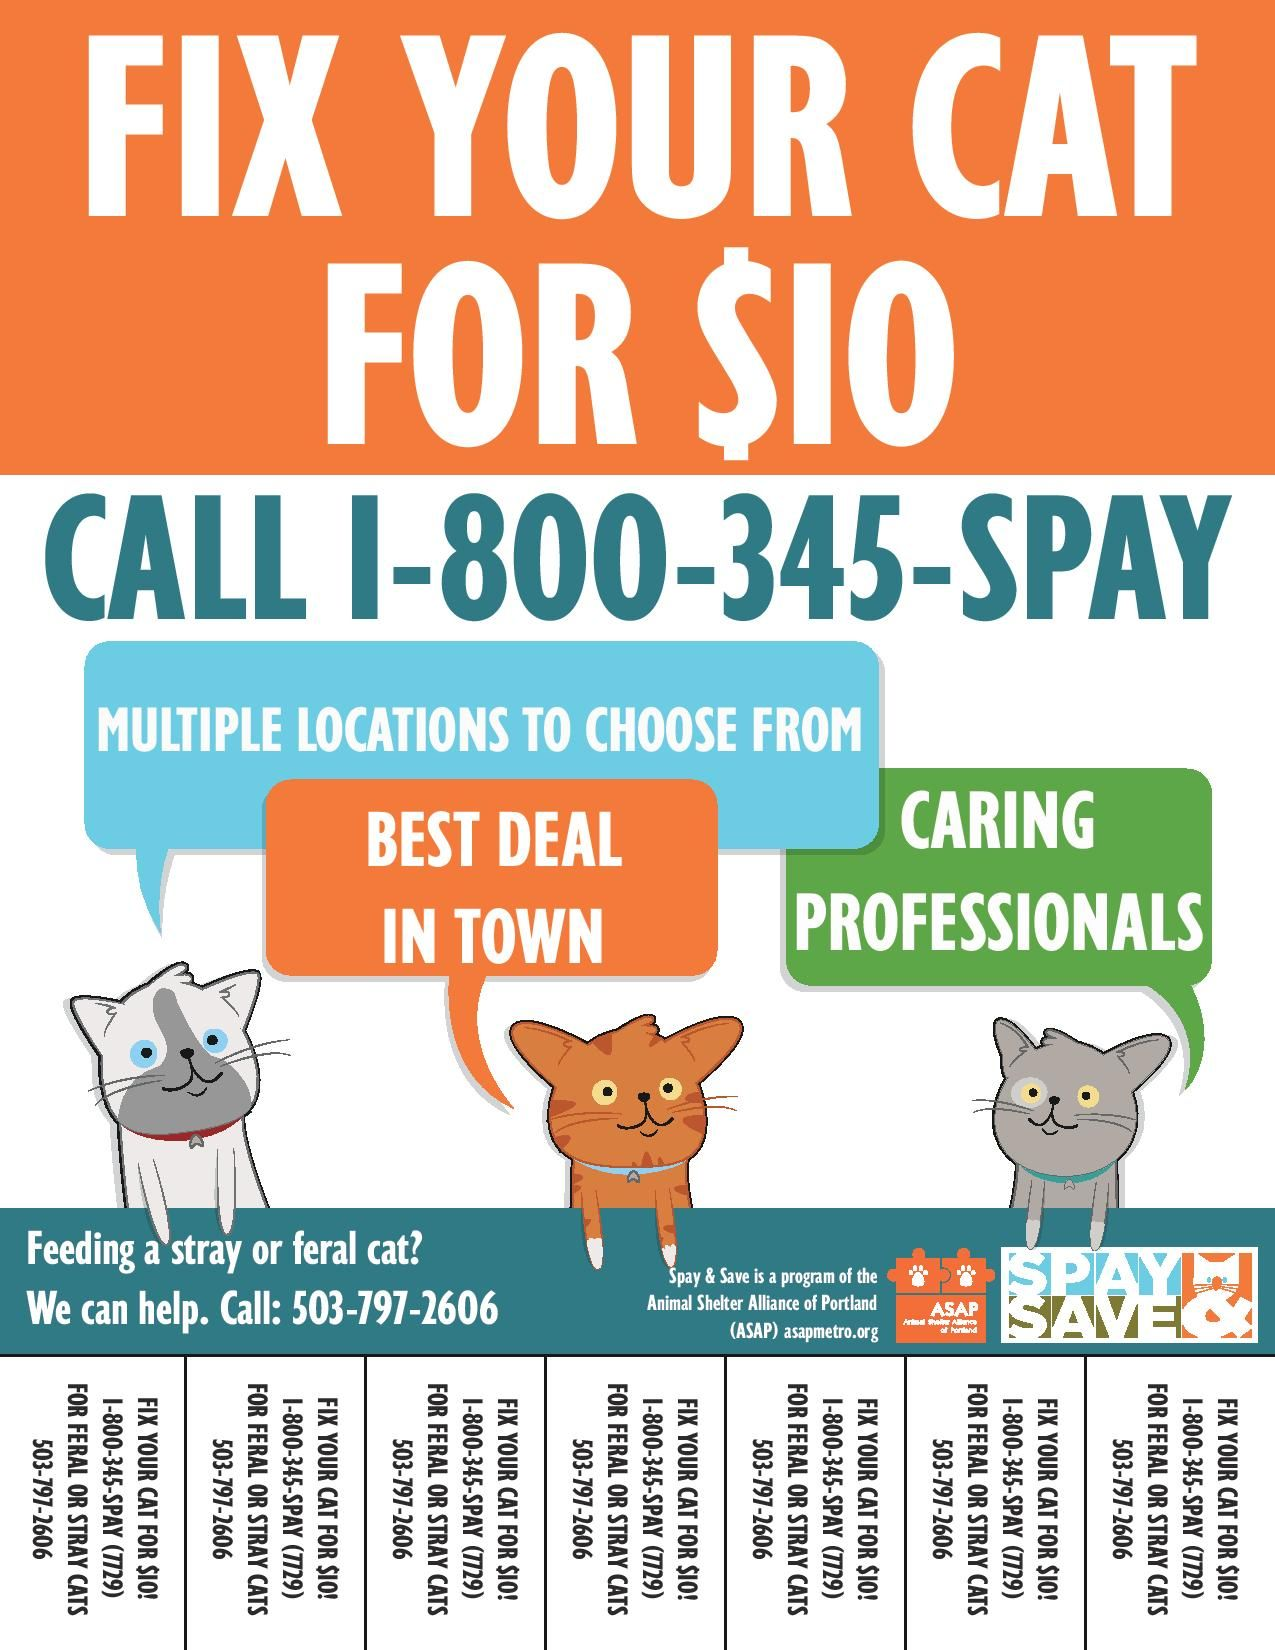 Lowcost spay and neuter services for felines throughout